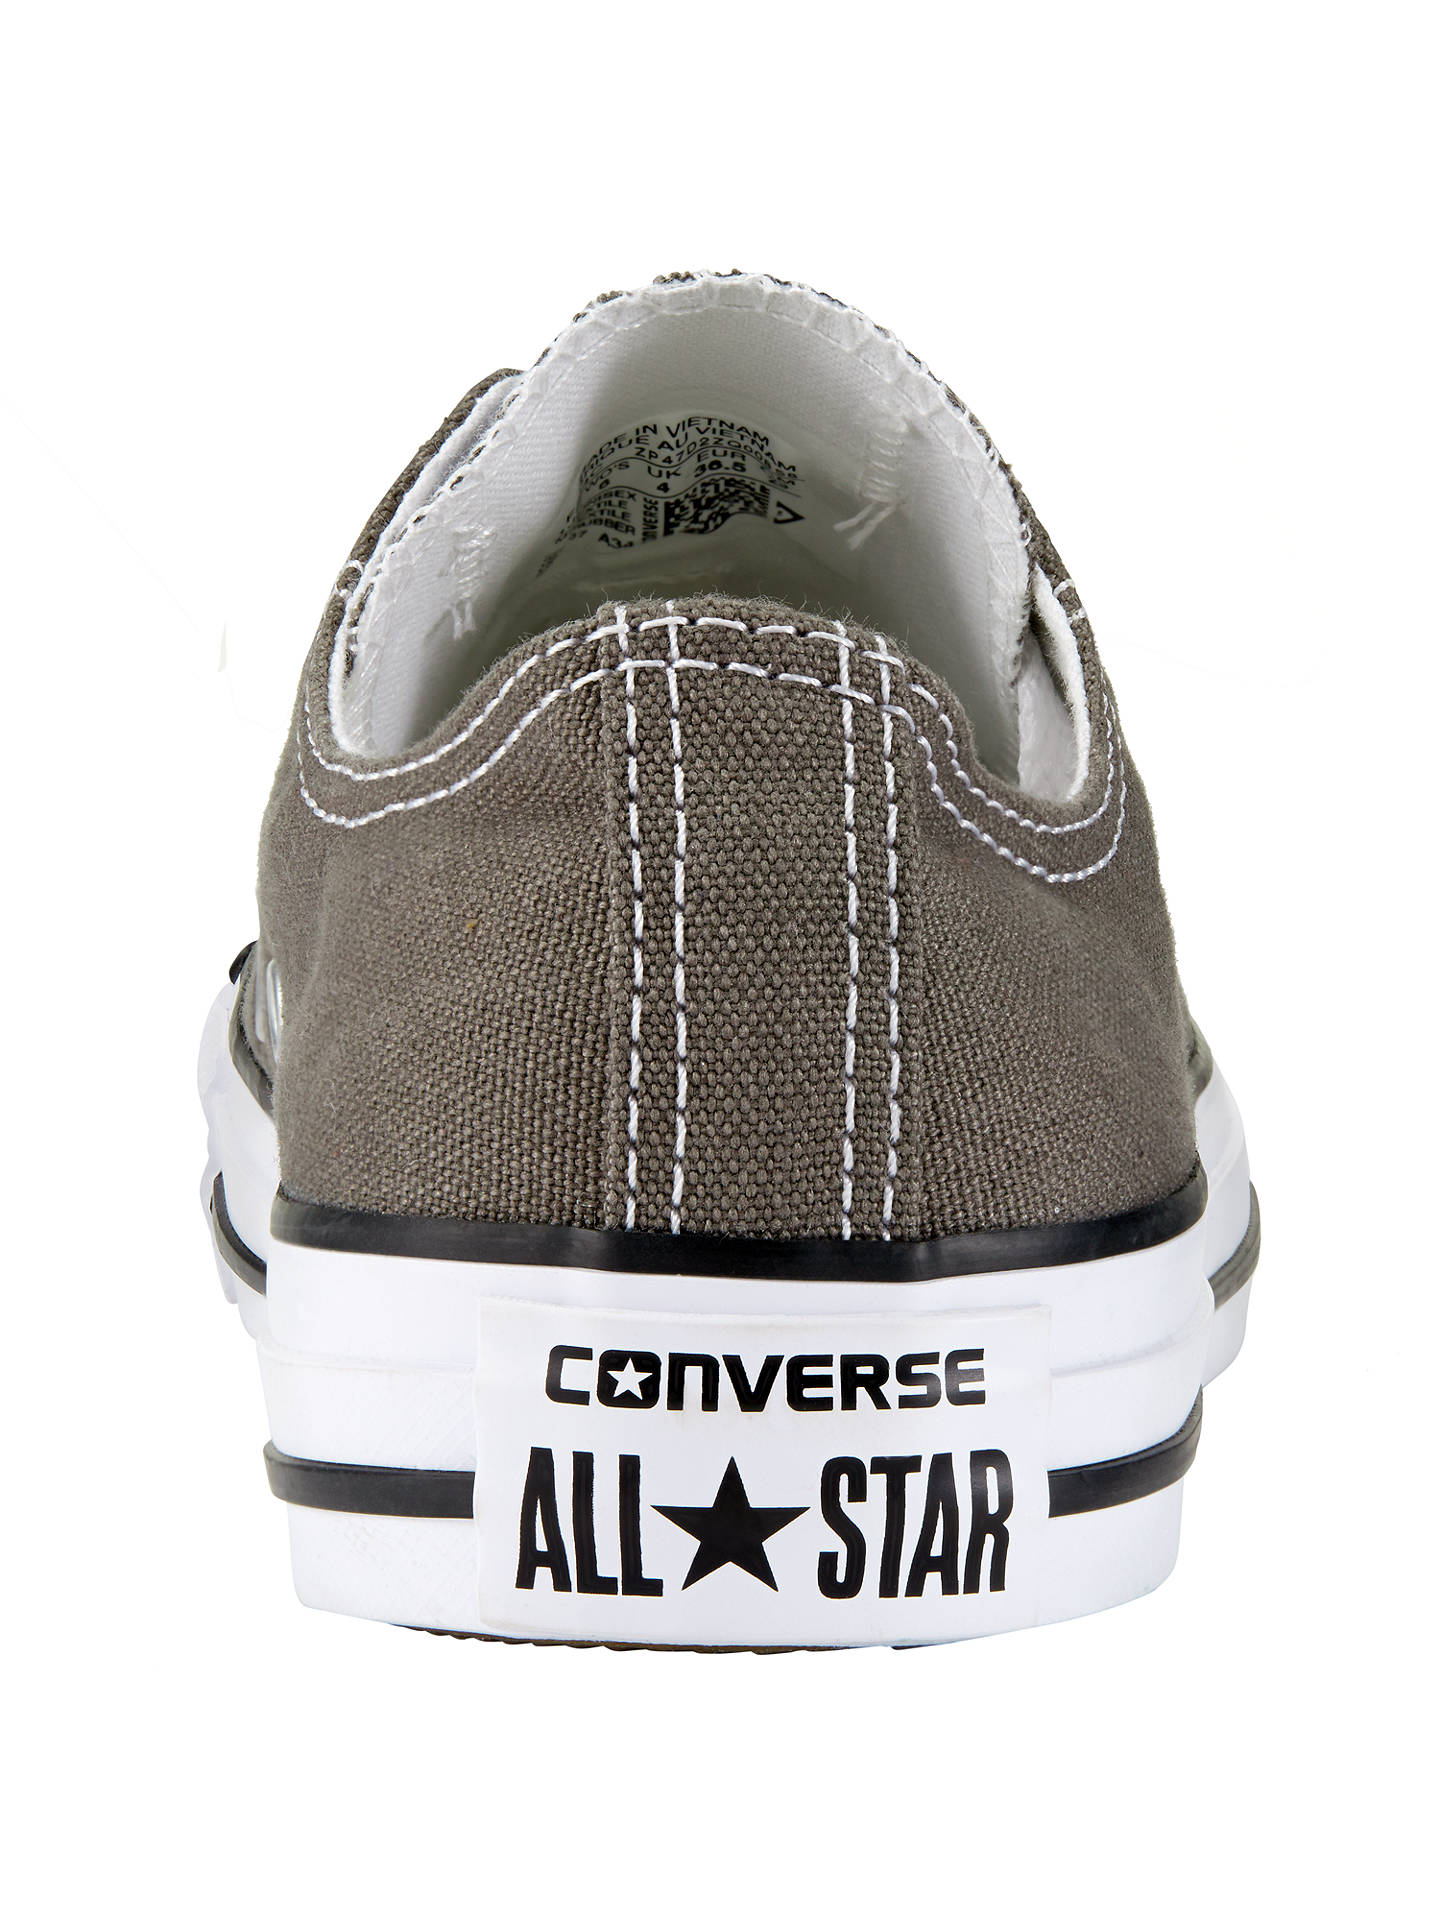 BuyConverse Chuck Taylor All Star Canvas Ox Low-Top Trainers, Charcoal, 3 Online at johnlewis.com